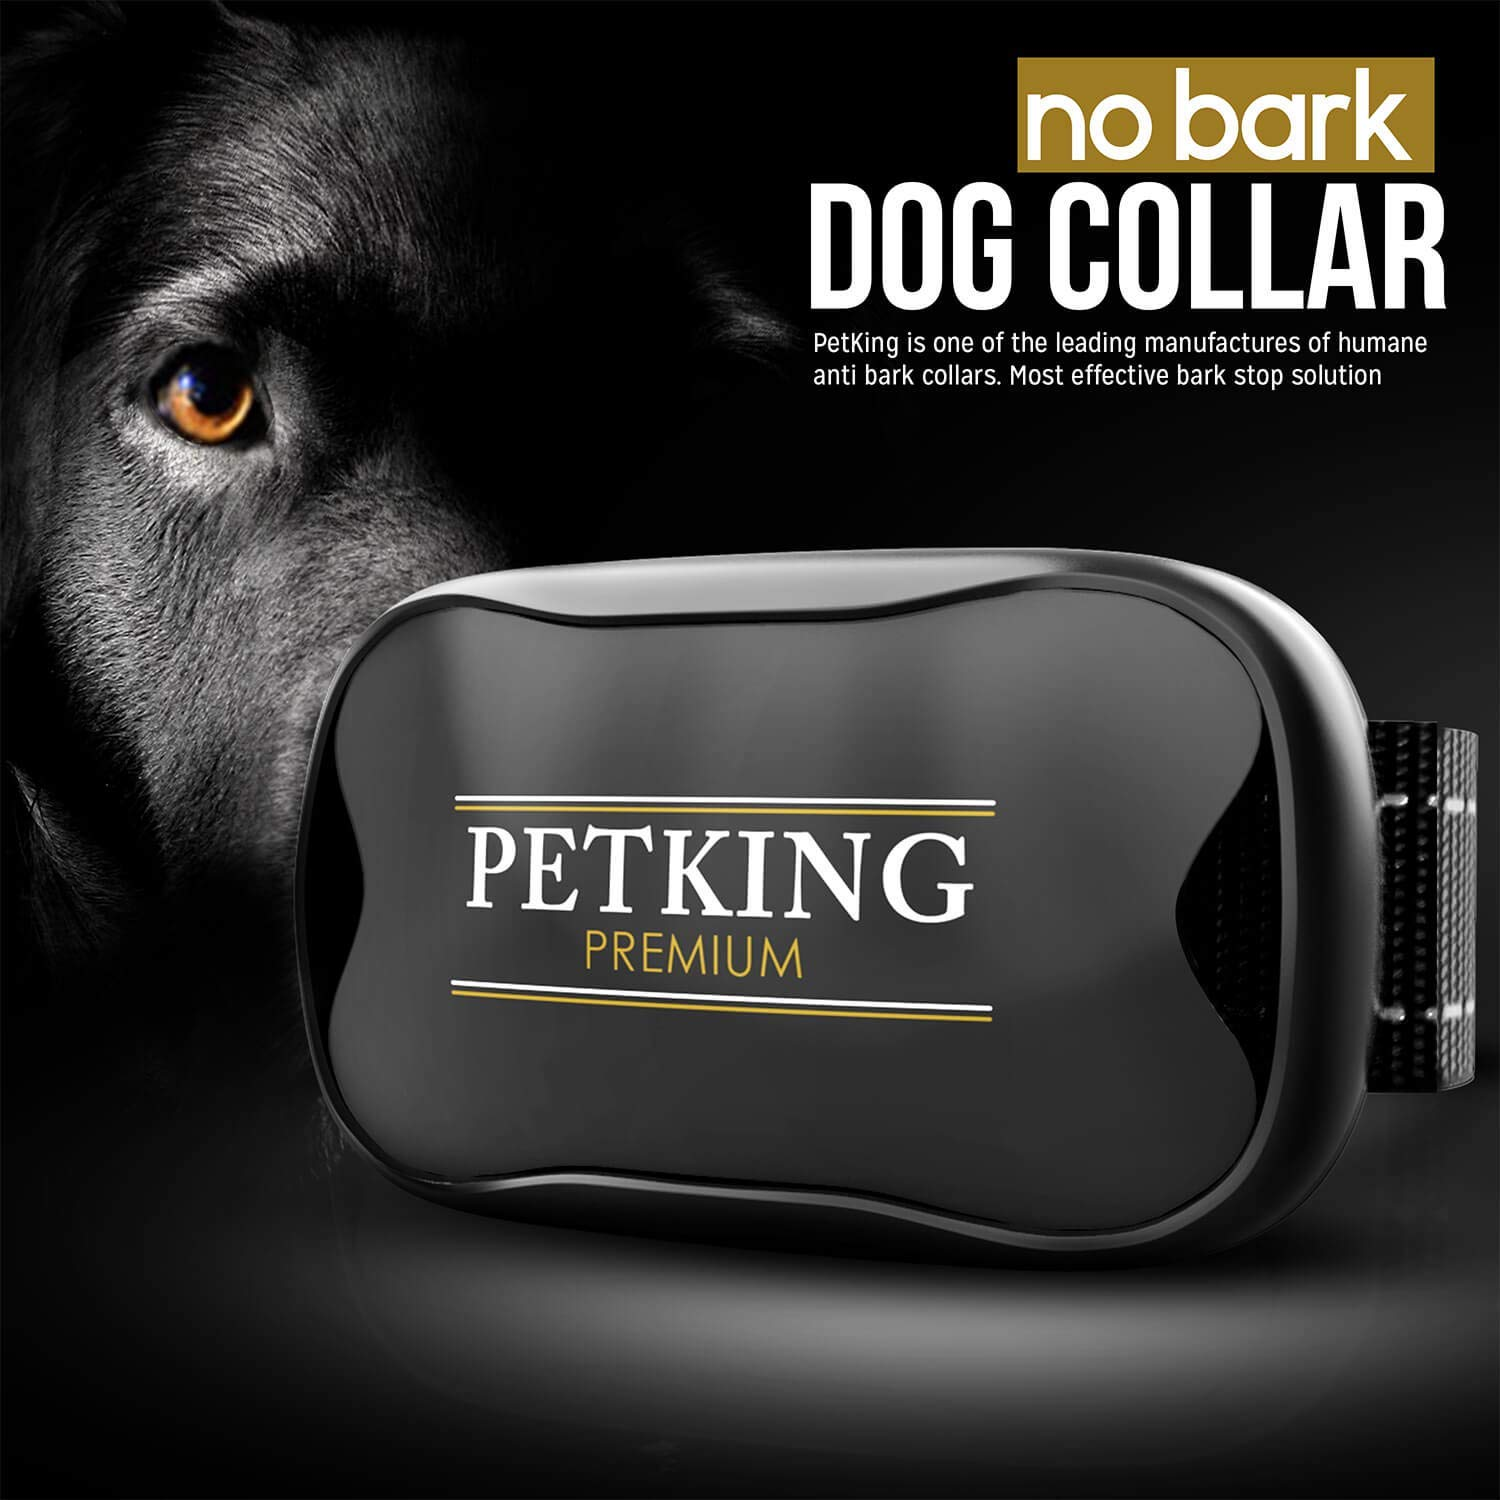 PETKING - Effective Anti Bark Dog Collar | Safe & Hummane No Barking Control Device to Stop Small Medium & Large Breeds | No Shock Spray or Aids | Best 2018 Anti-Barking Sound and Vibration Technology